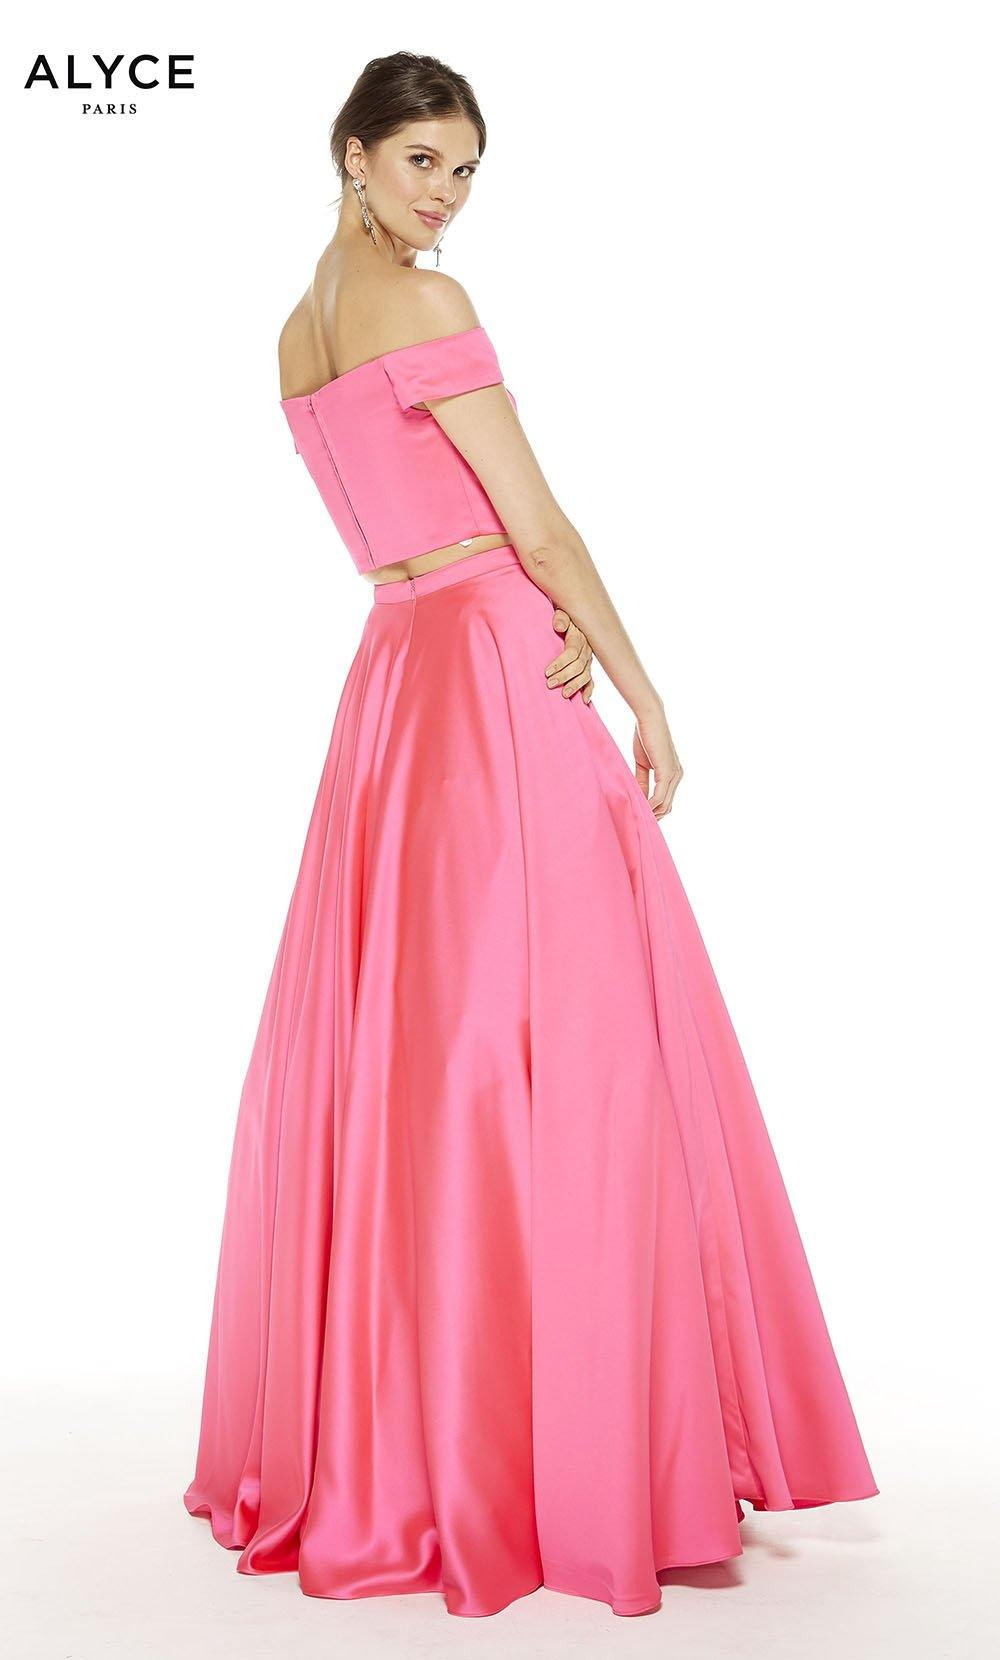 Barbie Pink satin off the shoulder two piece prom dress with an enclosed back